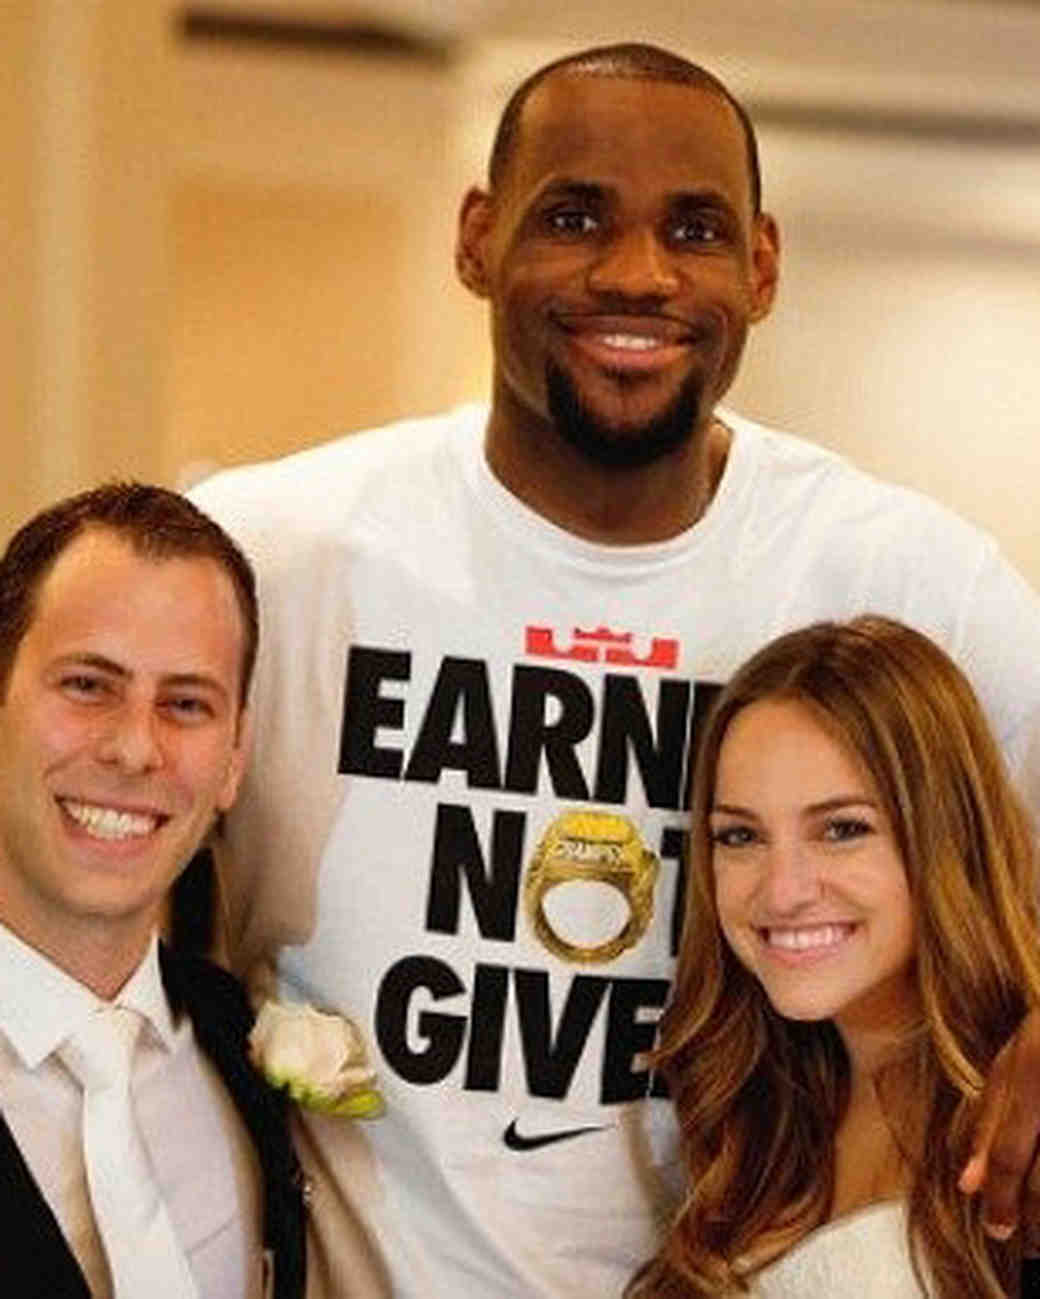 celebrity-wedding-crashers-lebron-james-1215.jpg